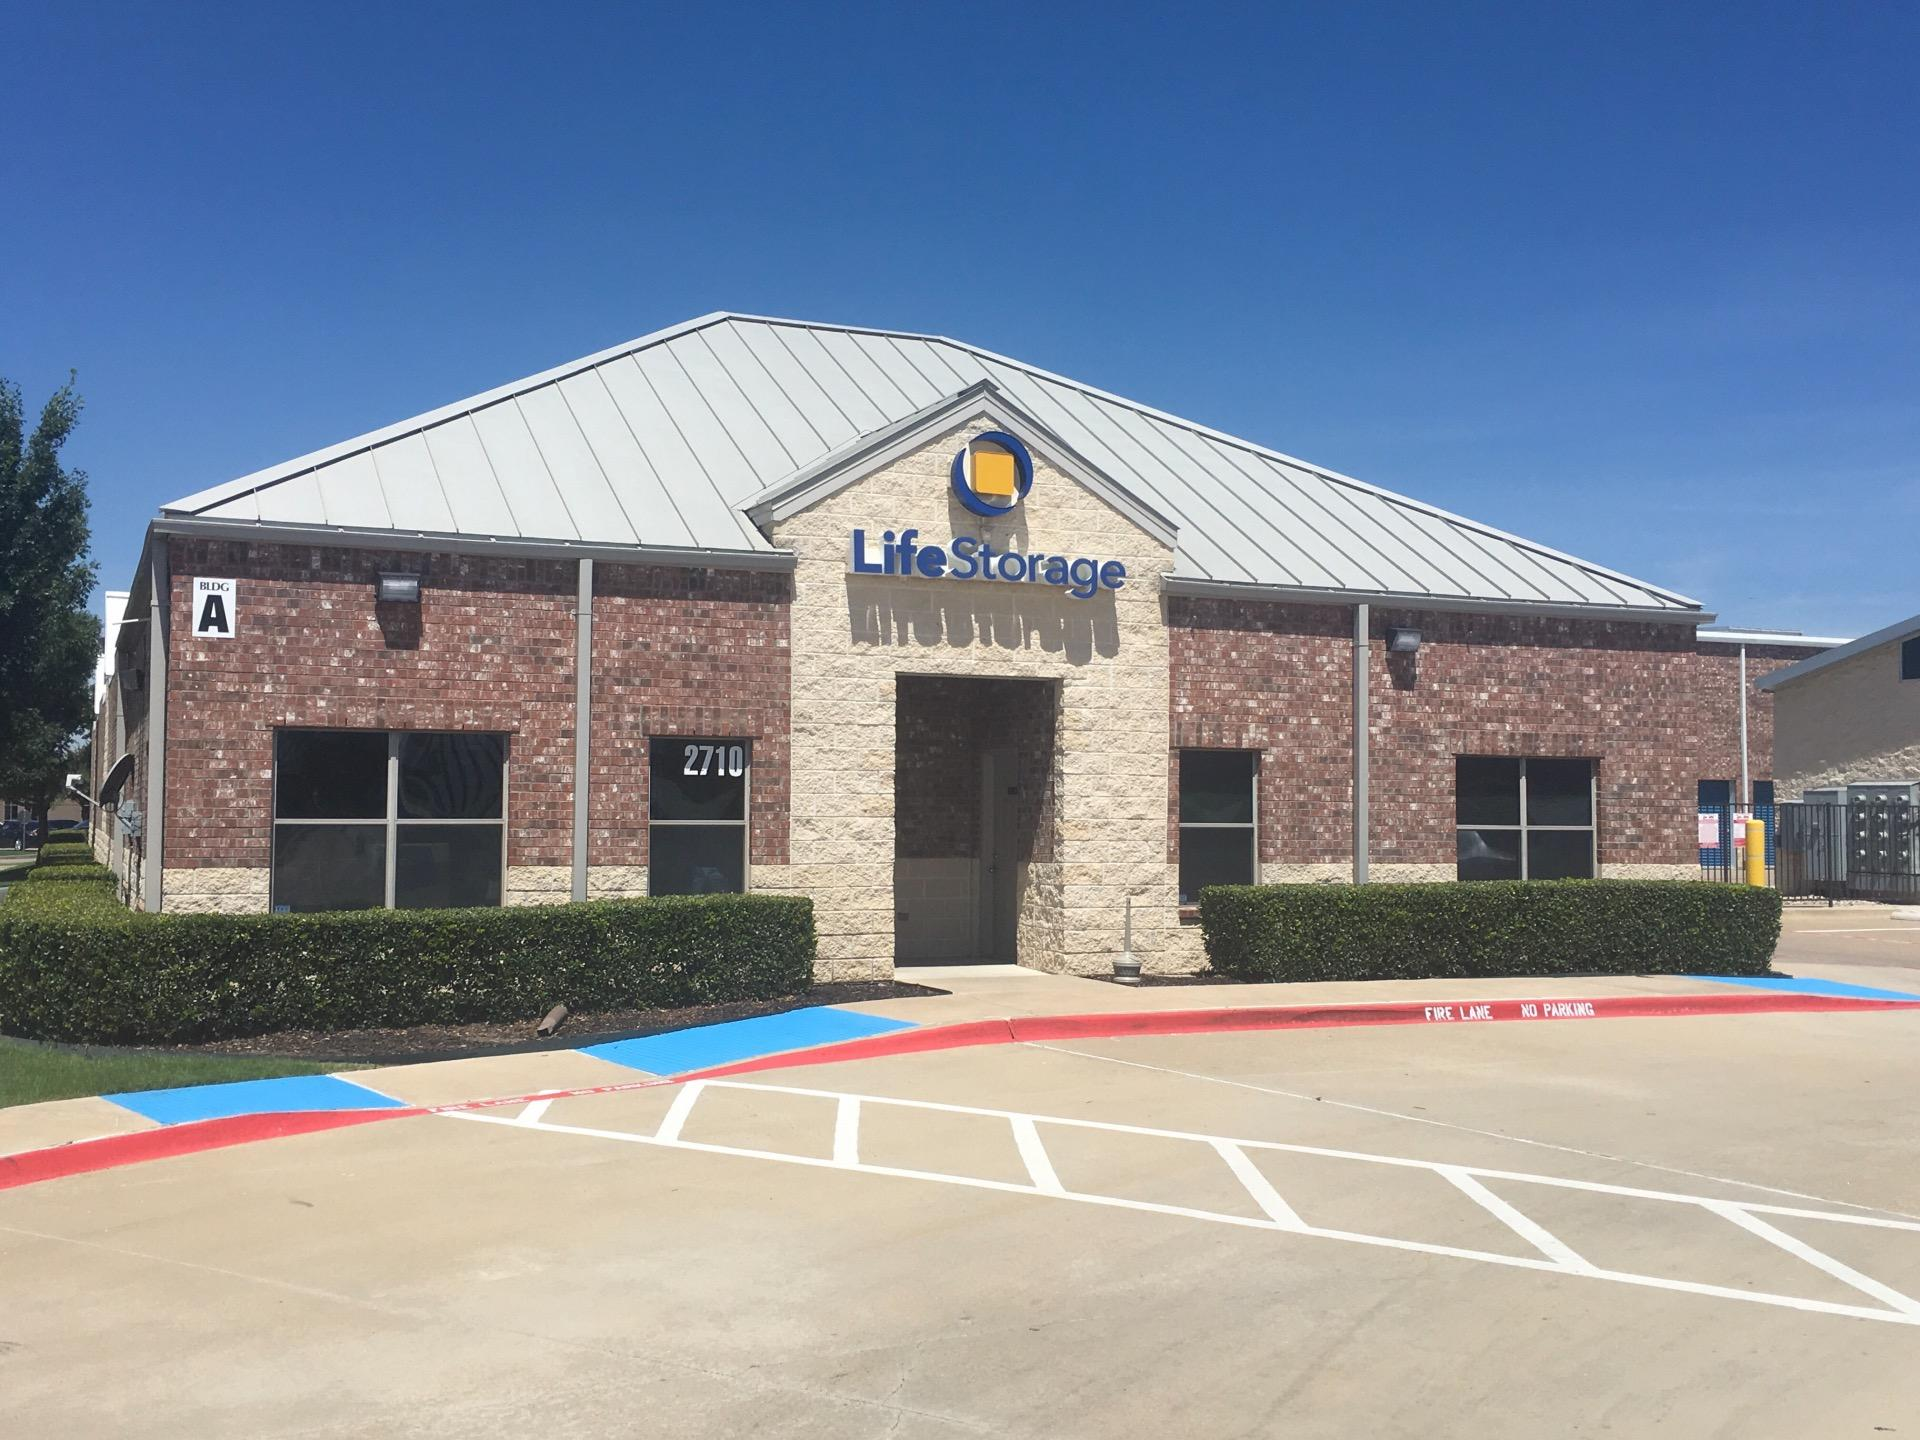 Commercial Storage Unit Pricing In Lewisville Life